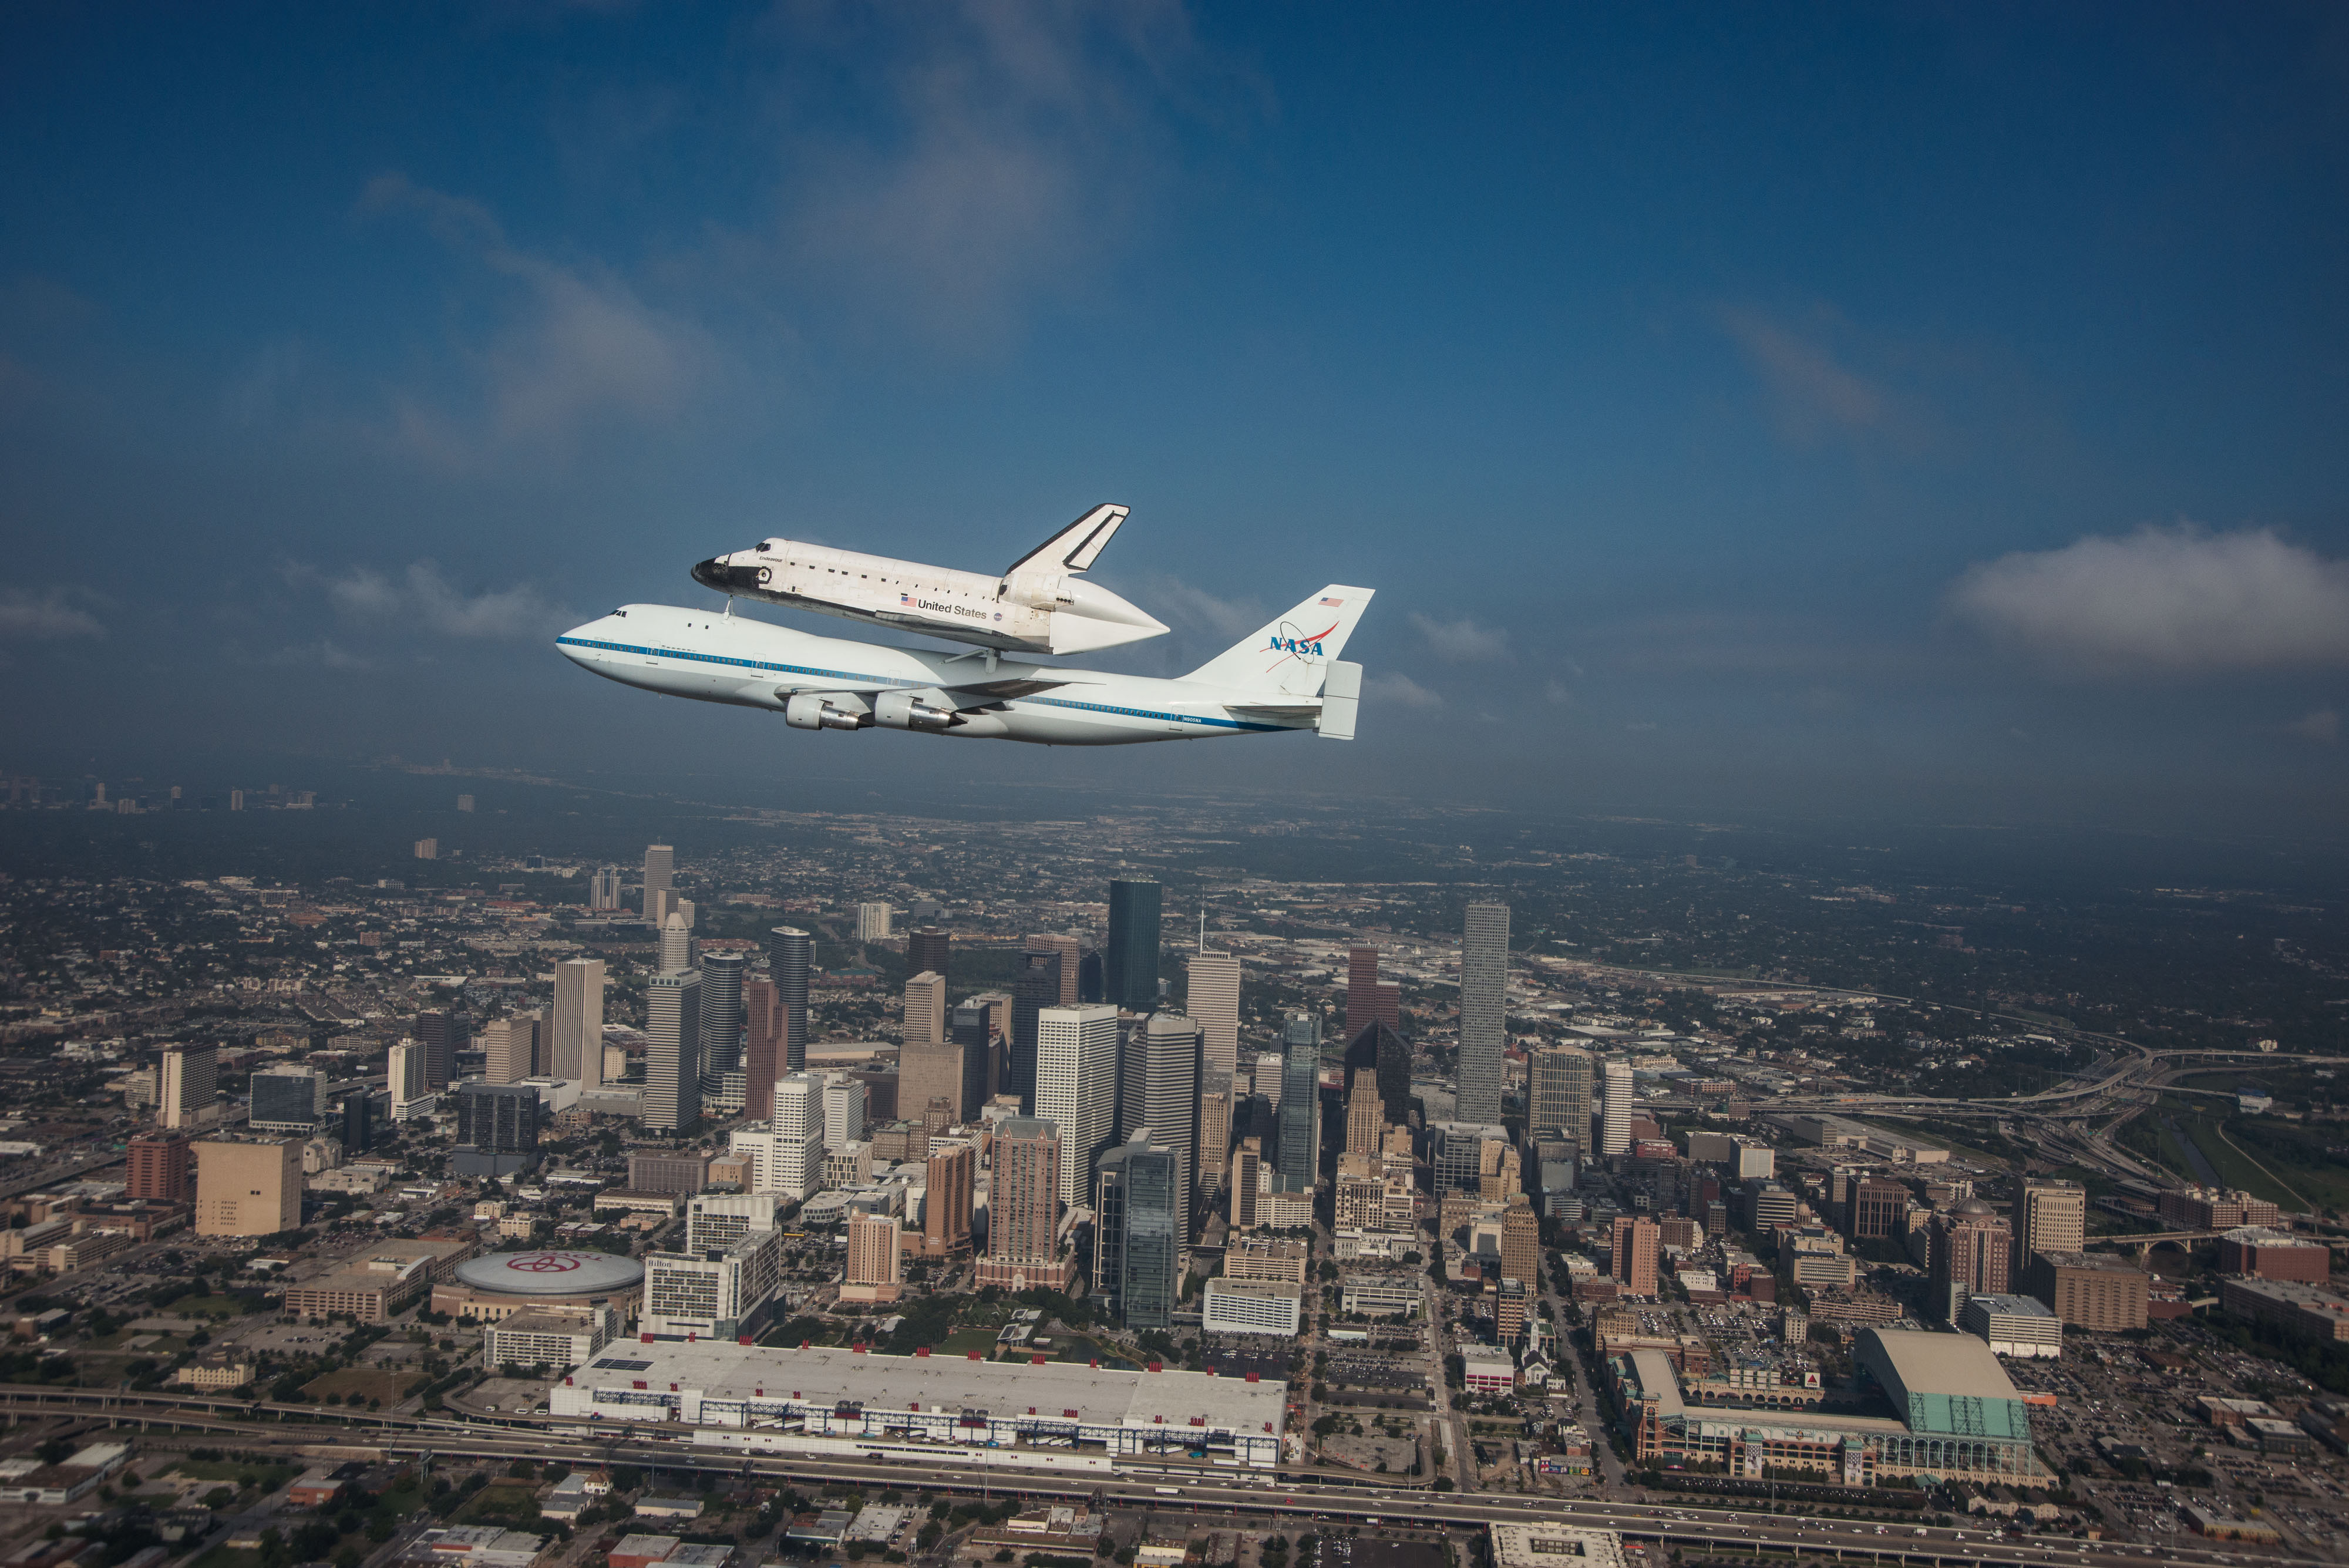 Image of the a NASA space craft attached to a jet flying over the city of Houston, Texas.